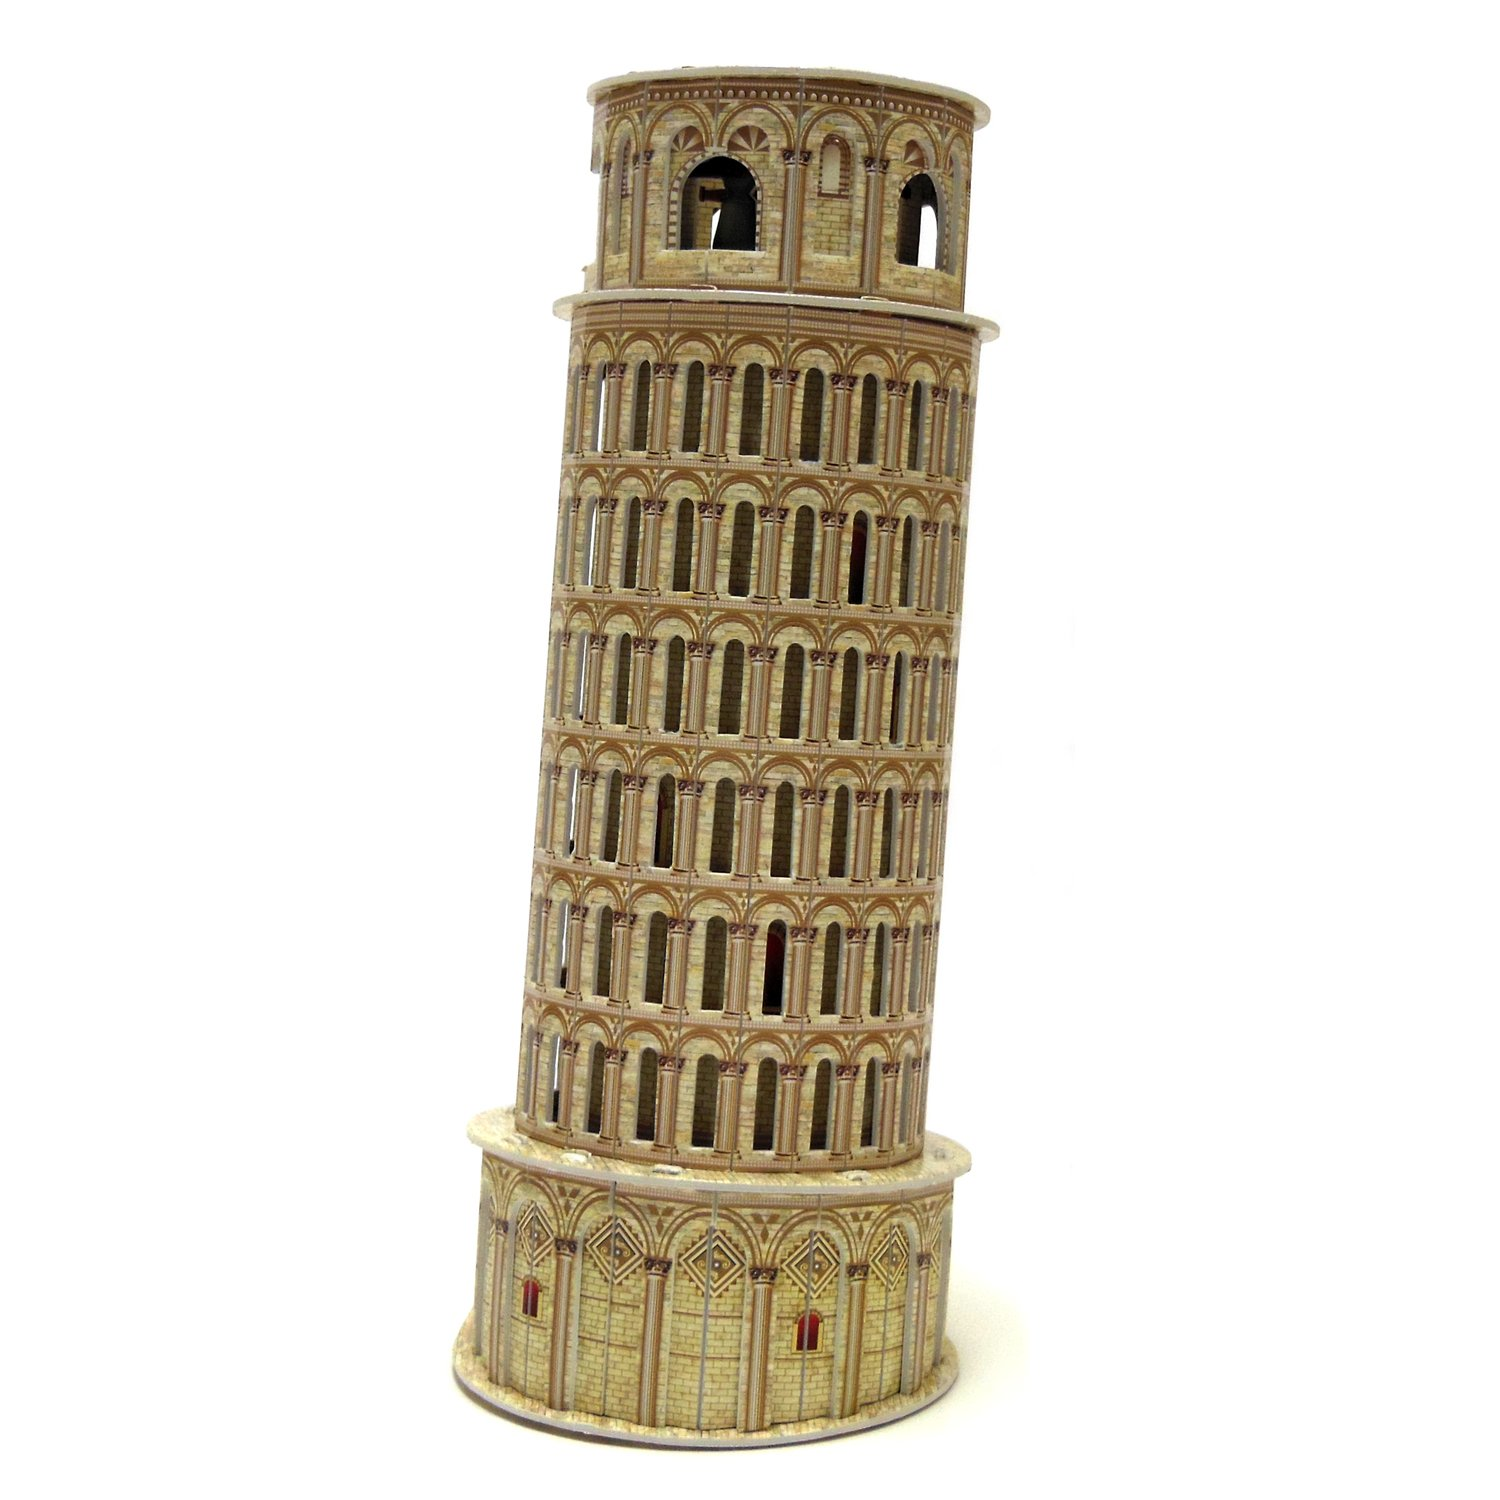 Ltd. Creative 3D Puzzle Paper Model Leaning Tower of Pisa DIY Fun /& Educational Toys World Great Architecture Series 16 Pcs Shantou Calebou Puzzle Toys Industrial Co